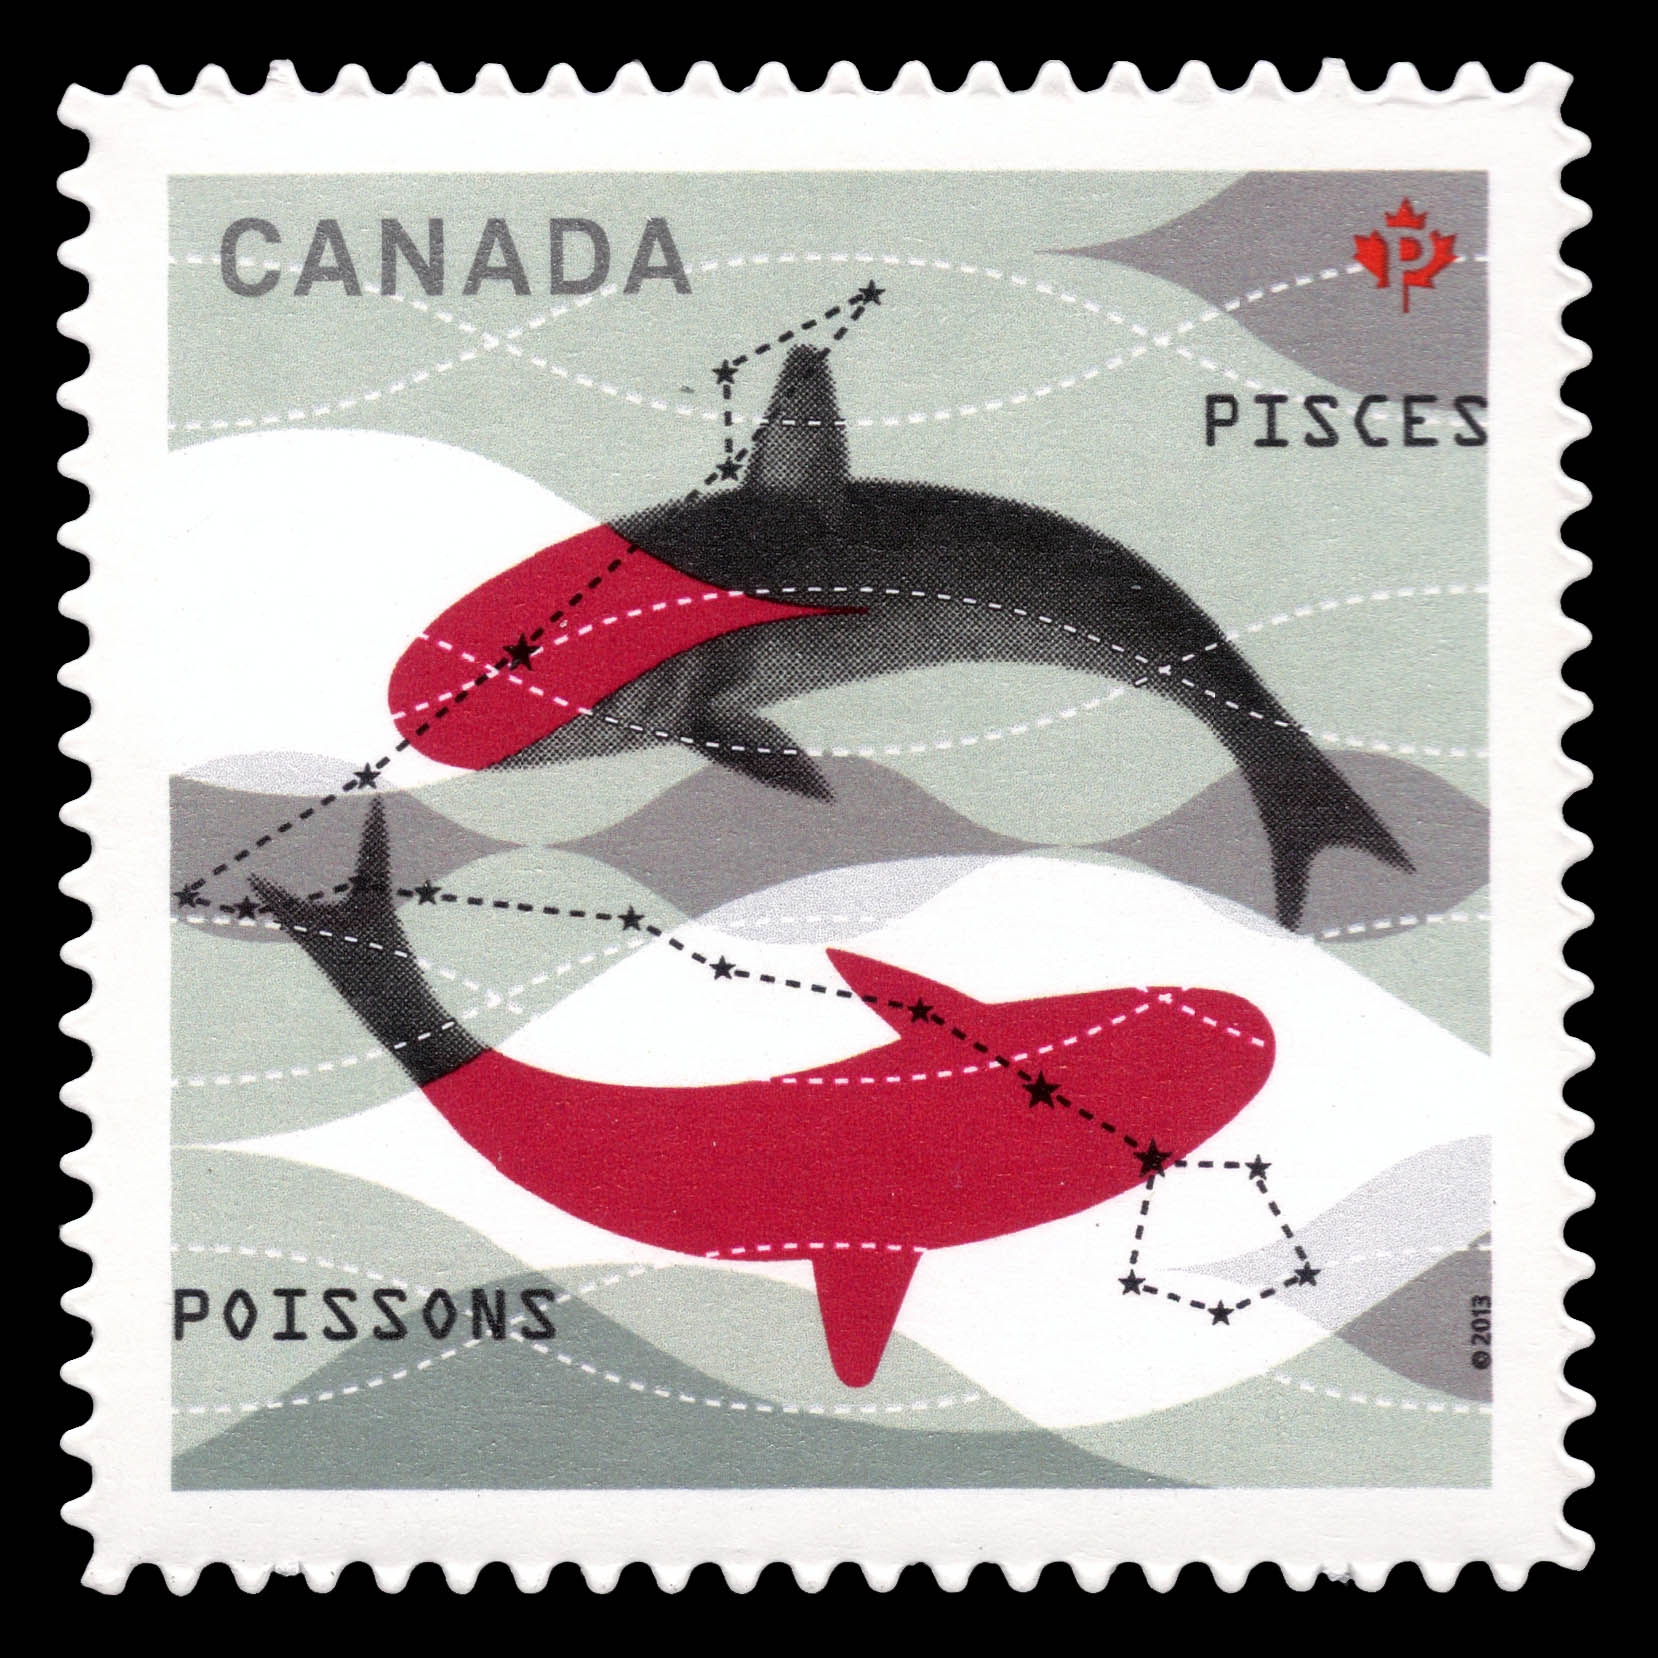 Signs of the Zodiac: Pisces Canada Postage Stamp | Signs of the Zodiac